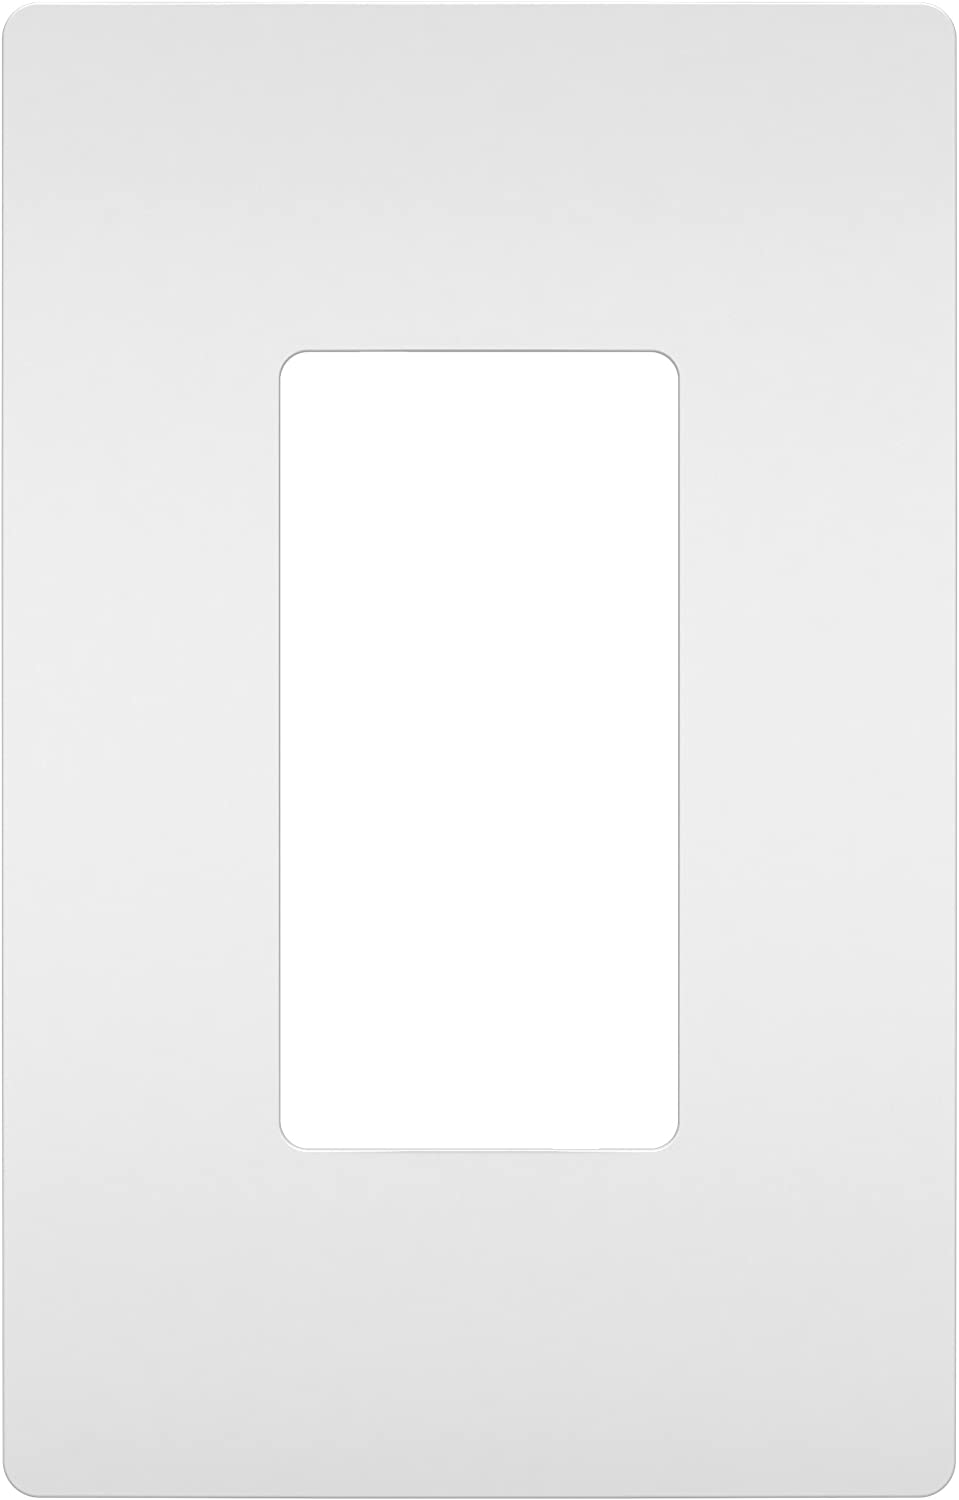 Legrand radiant Screwless Wall Plates for Decorator Rocker Outlets, 1-Gang, White, RWP26WCC10